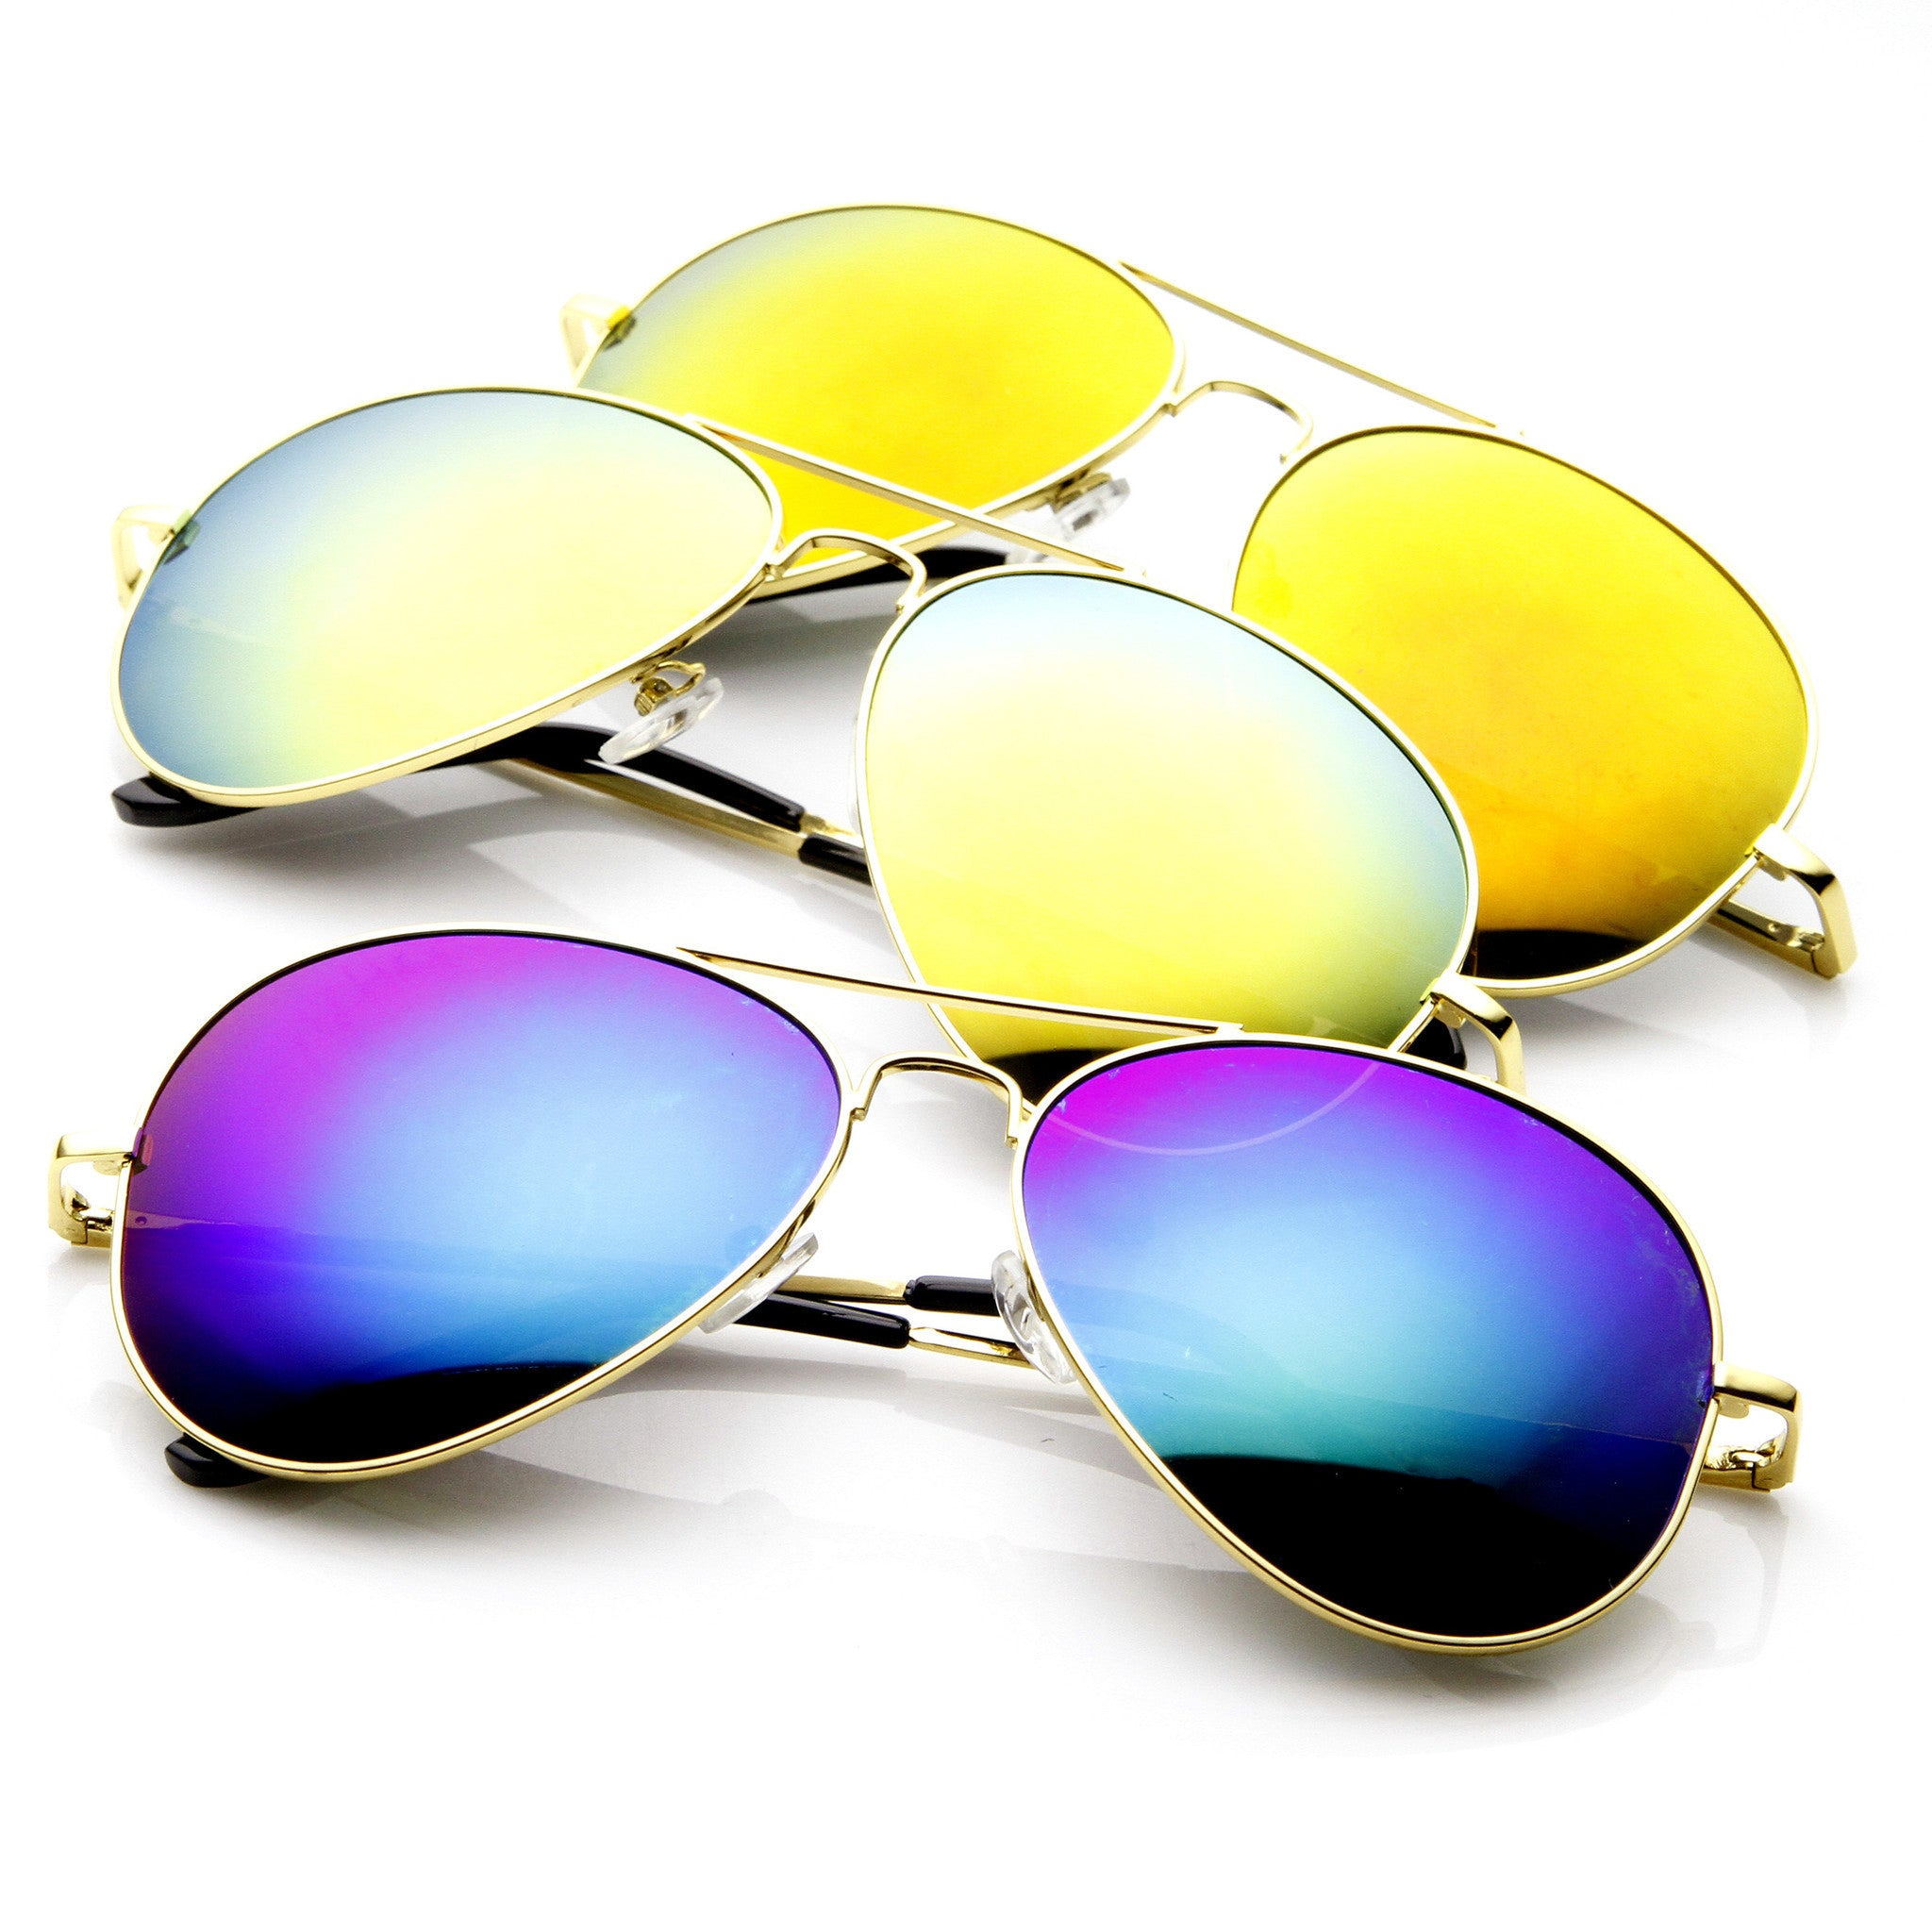 516f53e33ce Limited Edition Zerouv Full Gold Frame With Revo Mirrored Lens 1486  Sunglasses  3 Pack  No reviews  17.95  29.97